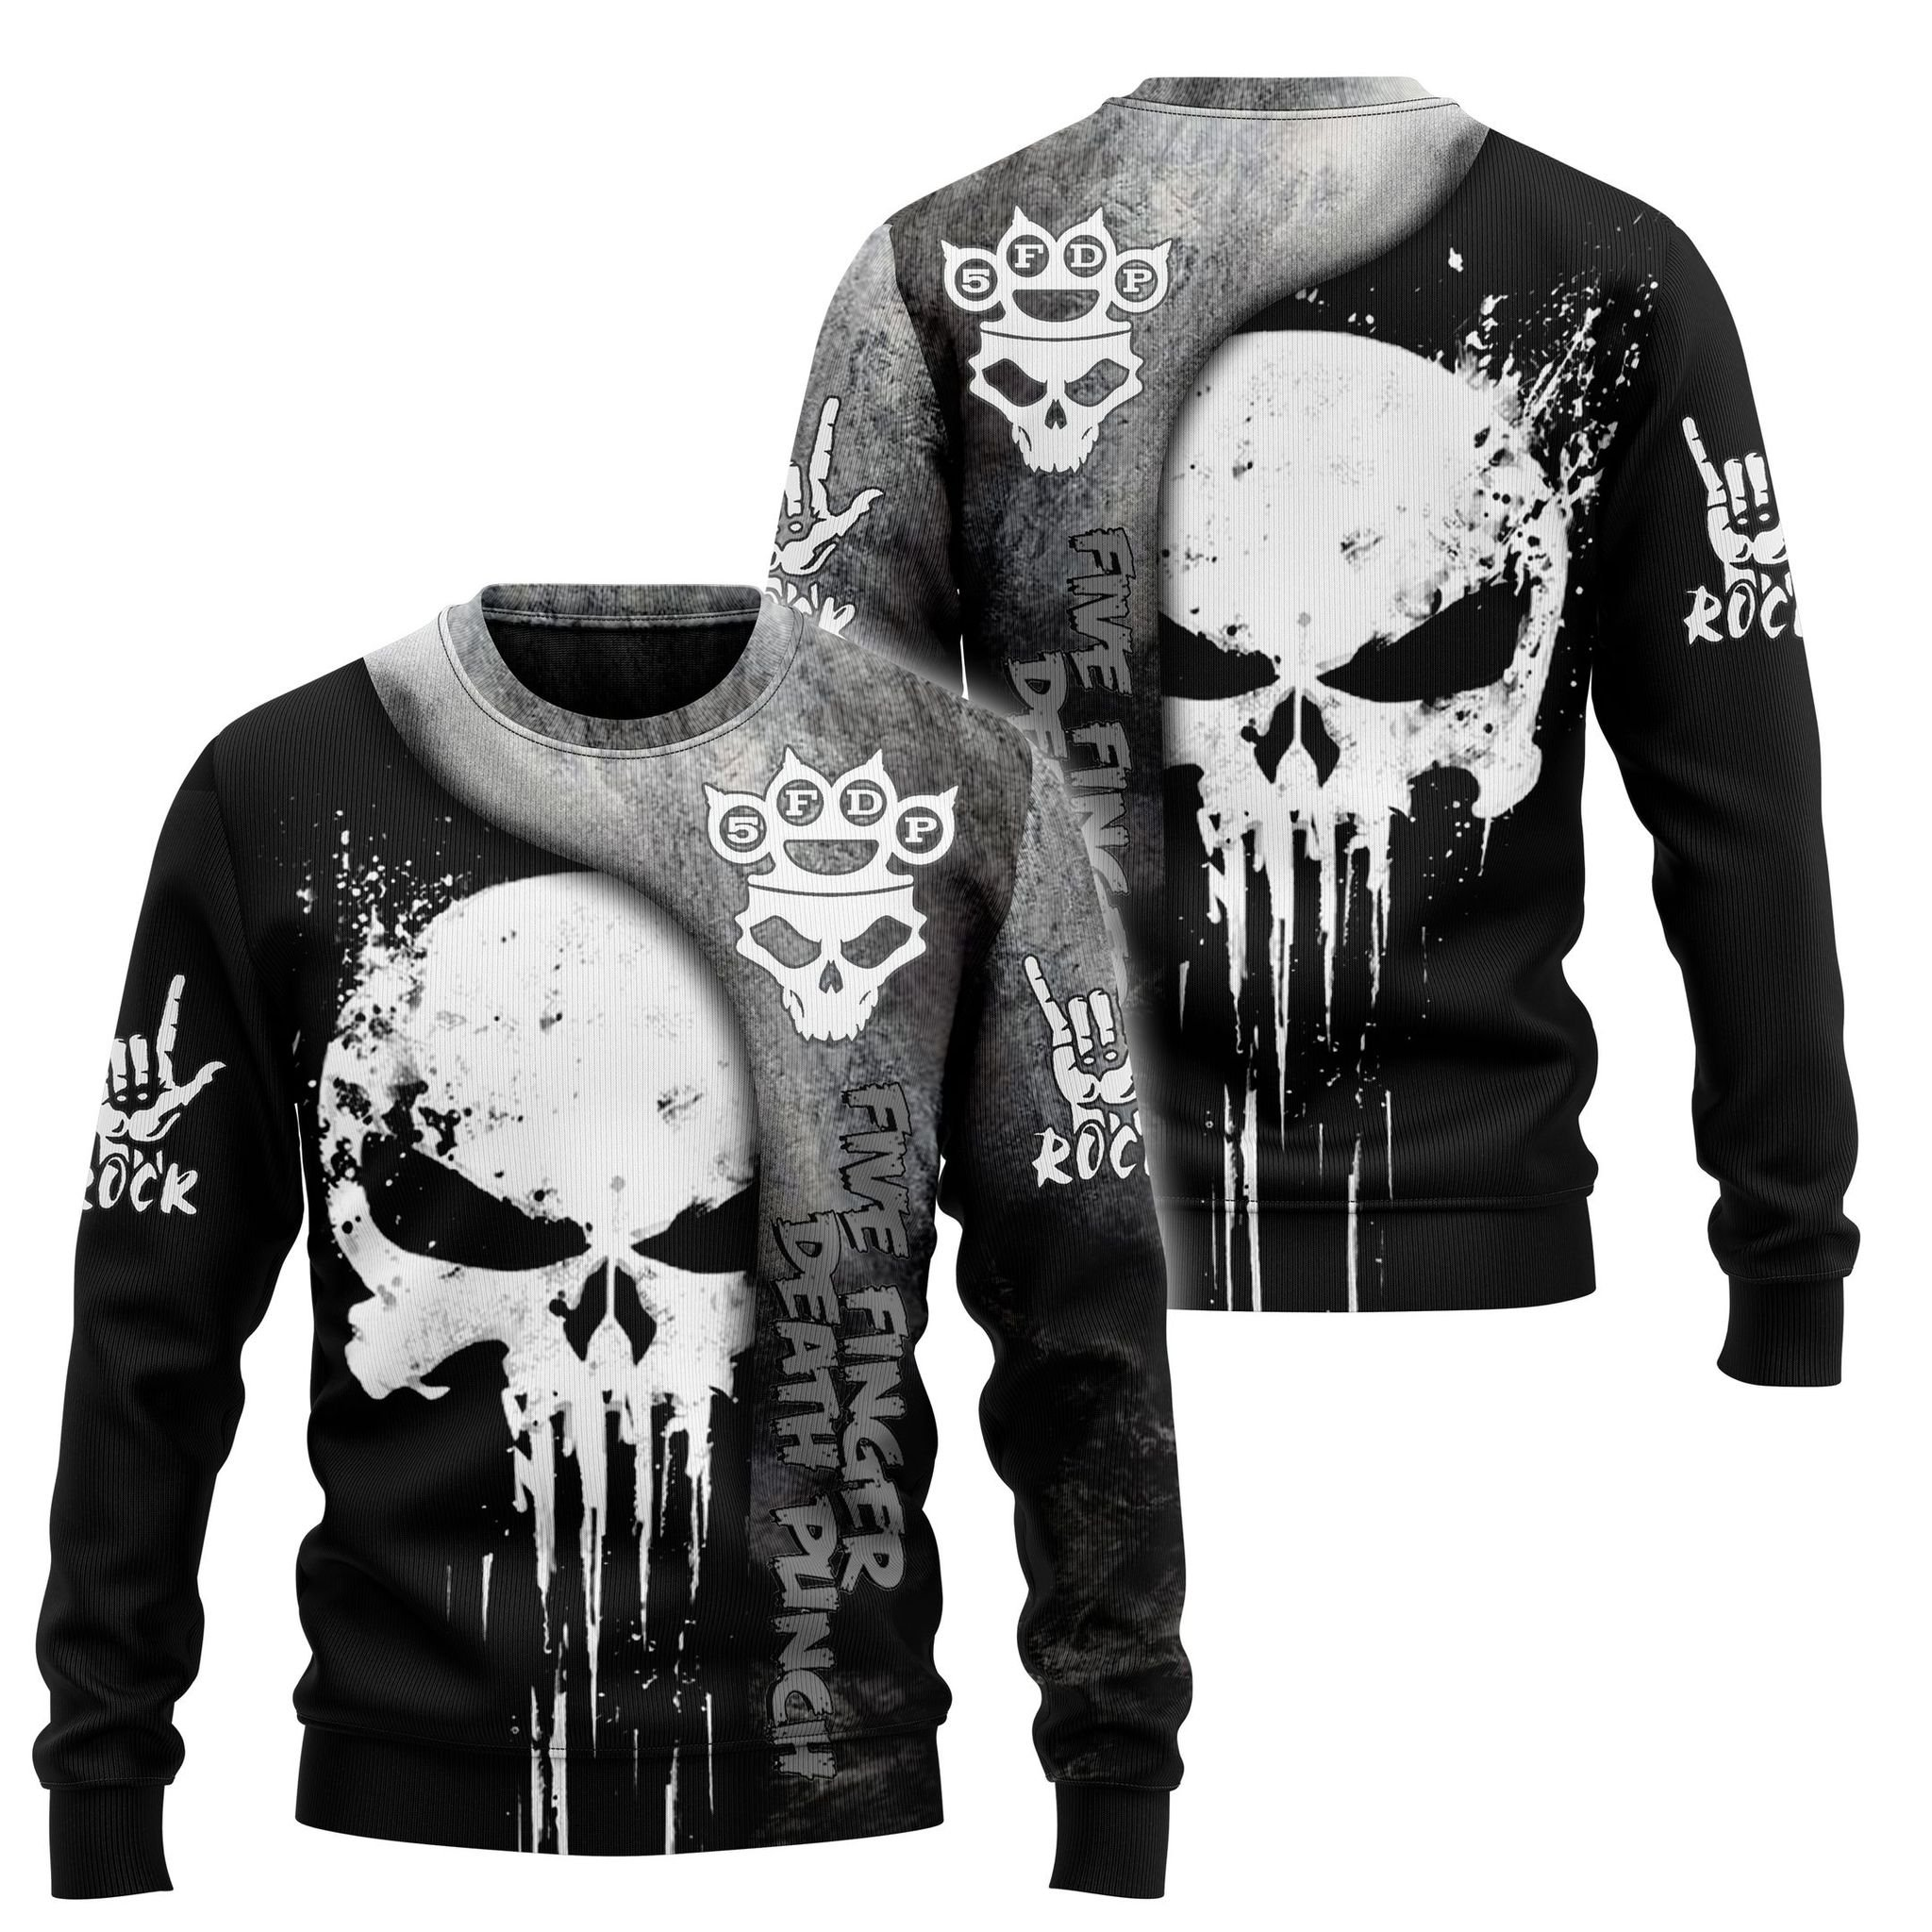 Skull five finger death punch 3d hoodie and shirt 1